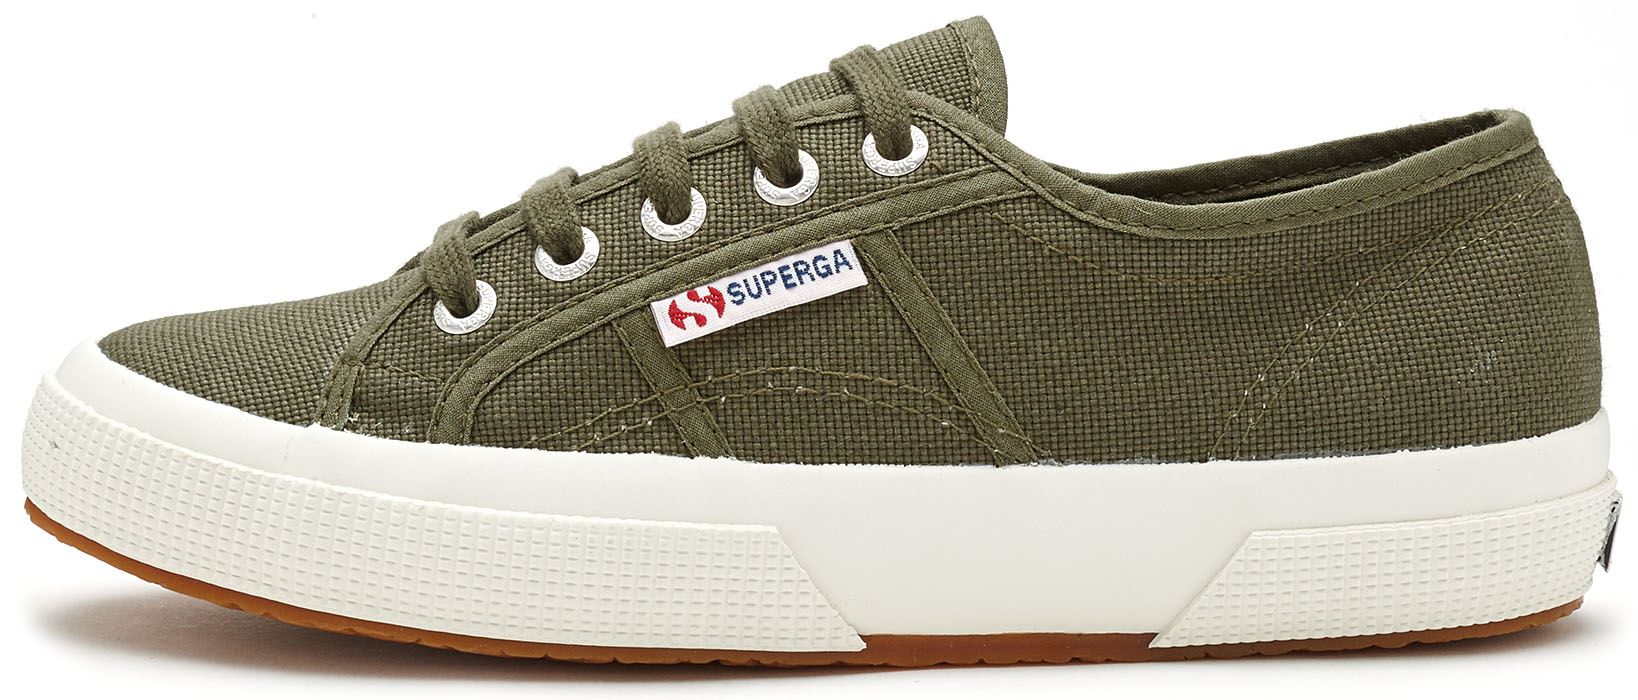 f5badd17f605b5 Superga 2750 Cotu Classic Canvas Shoes in White Taupe